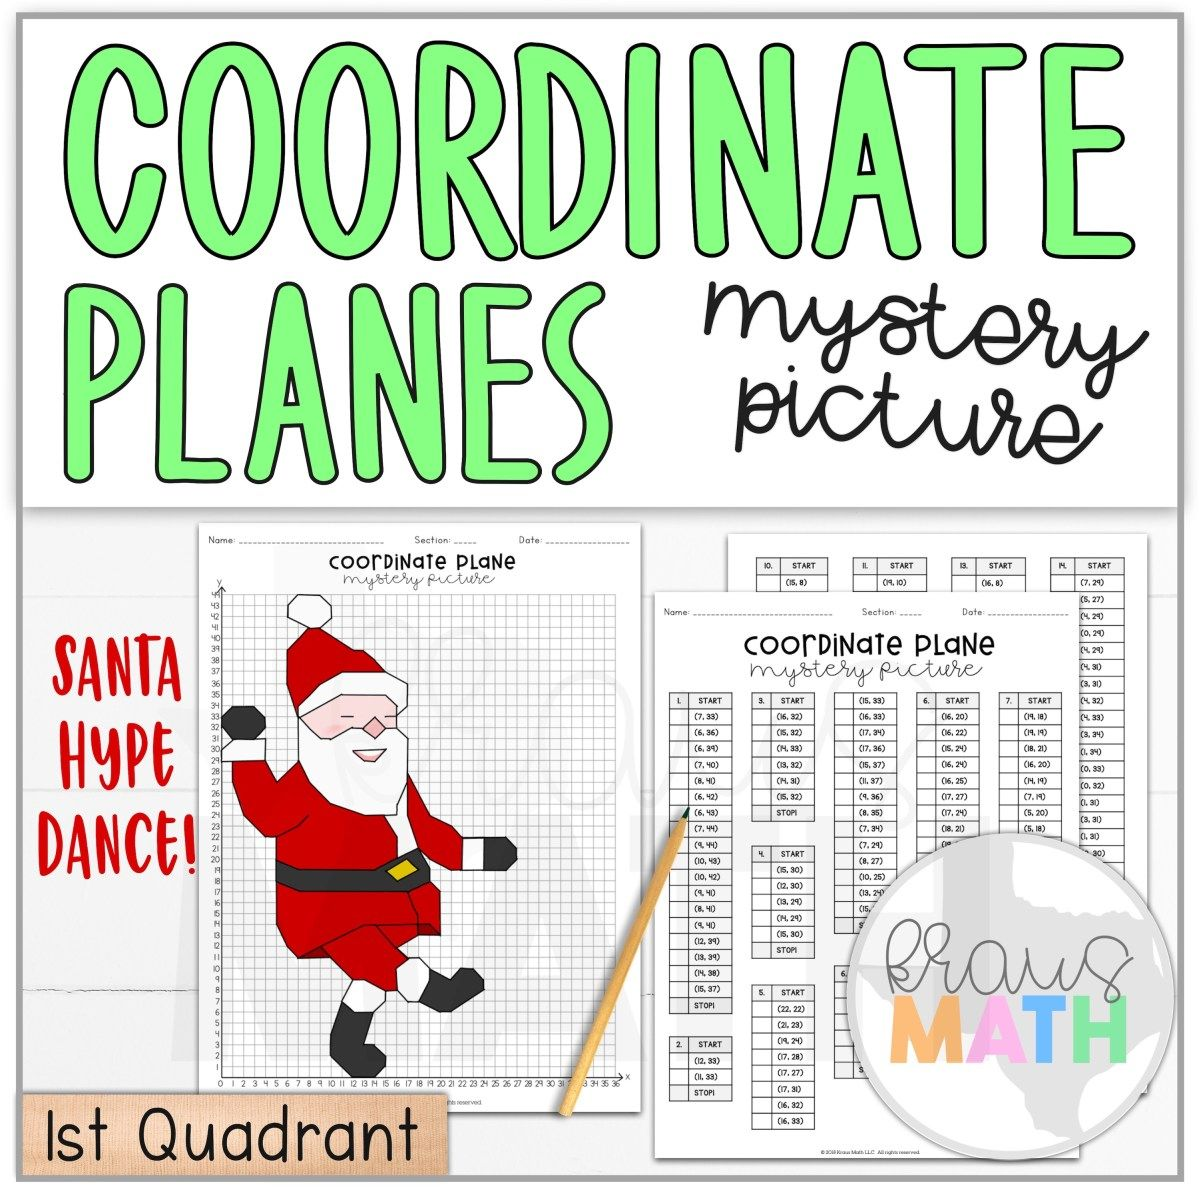 Santa Hype Dance Coordinate Plane Activity 1st Quadrant